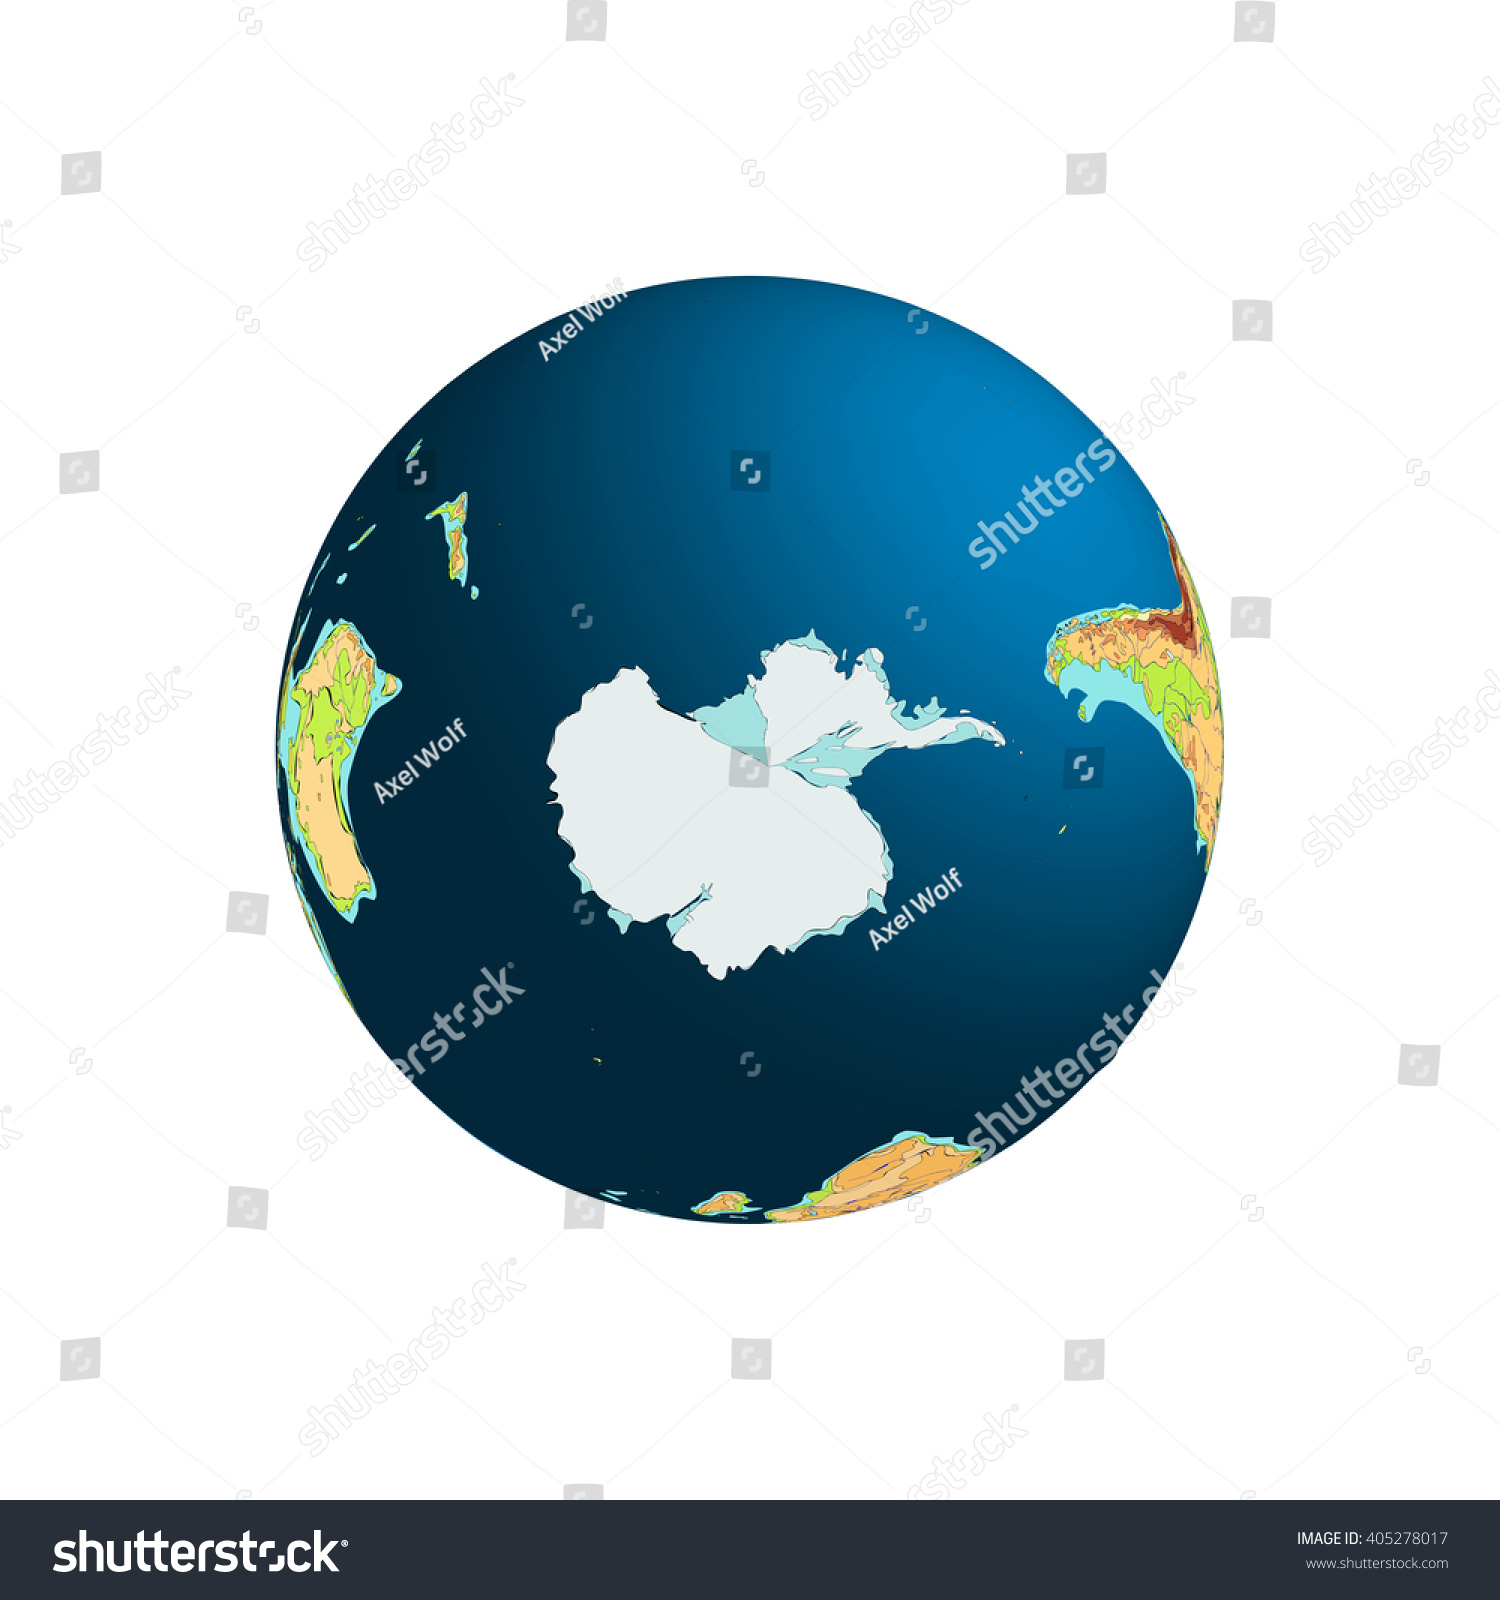 World globe planet earth antarctica south stock vector 405278017 world globe planet earth antarctica south pole vector illustration isolated on gumiabroncs Choice Image